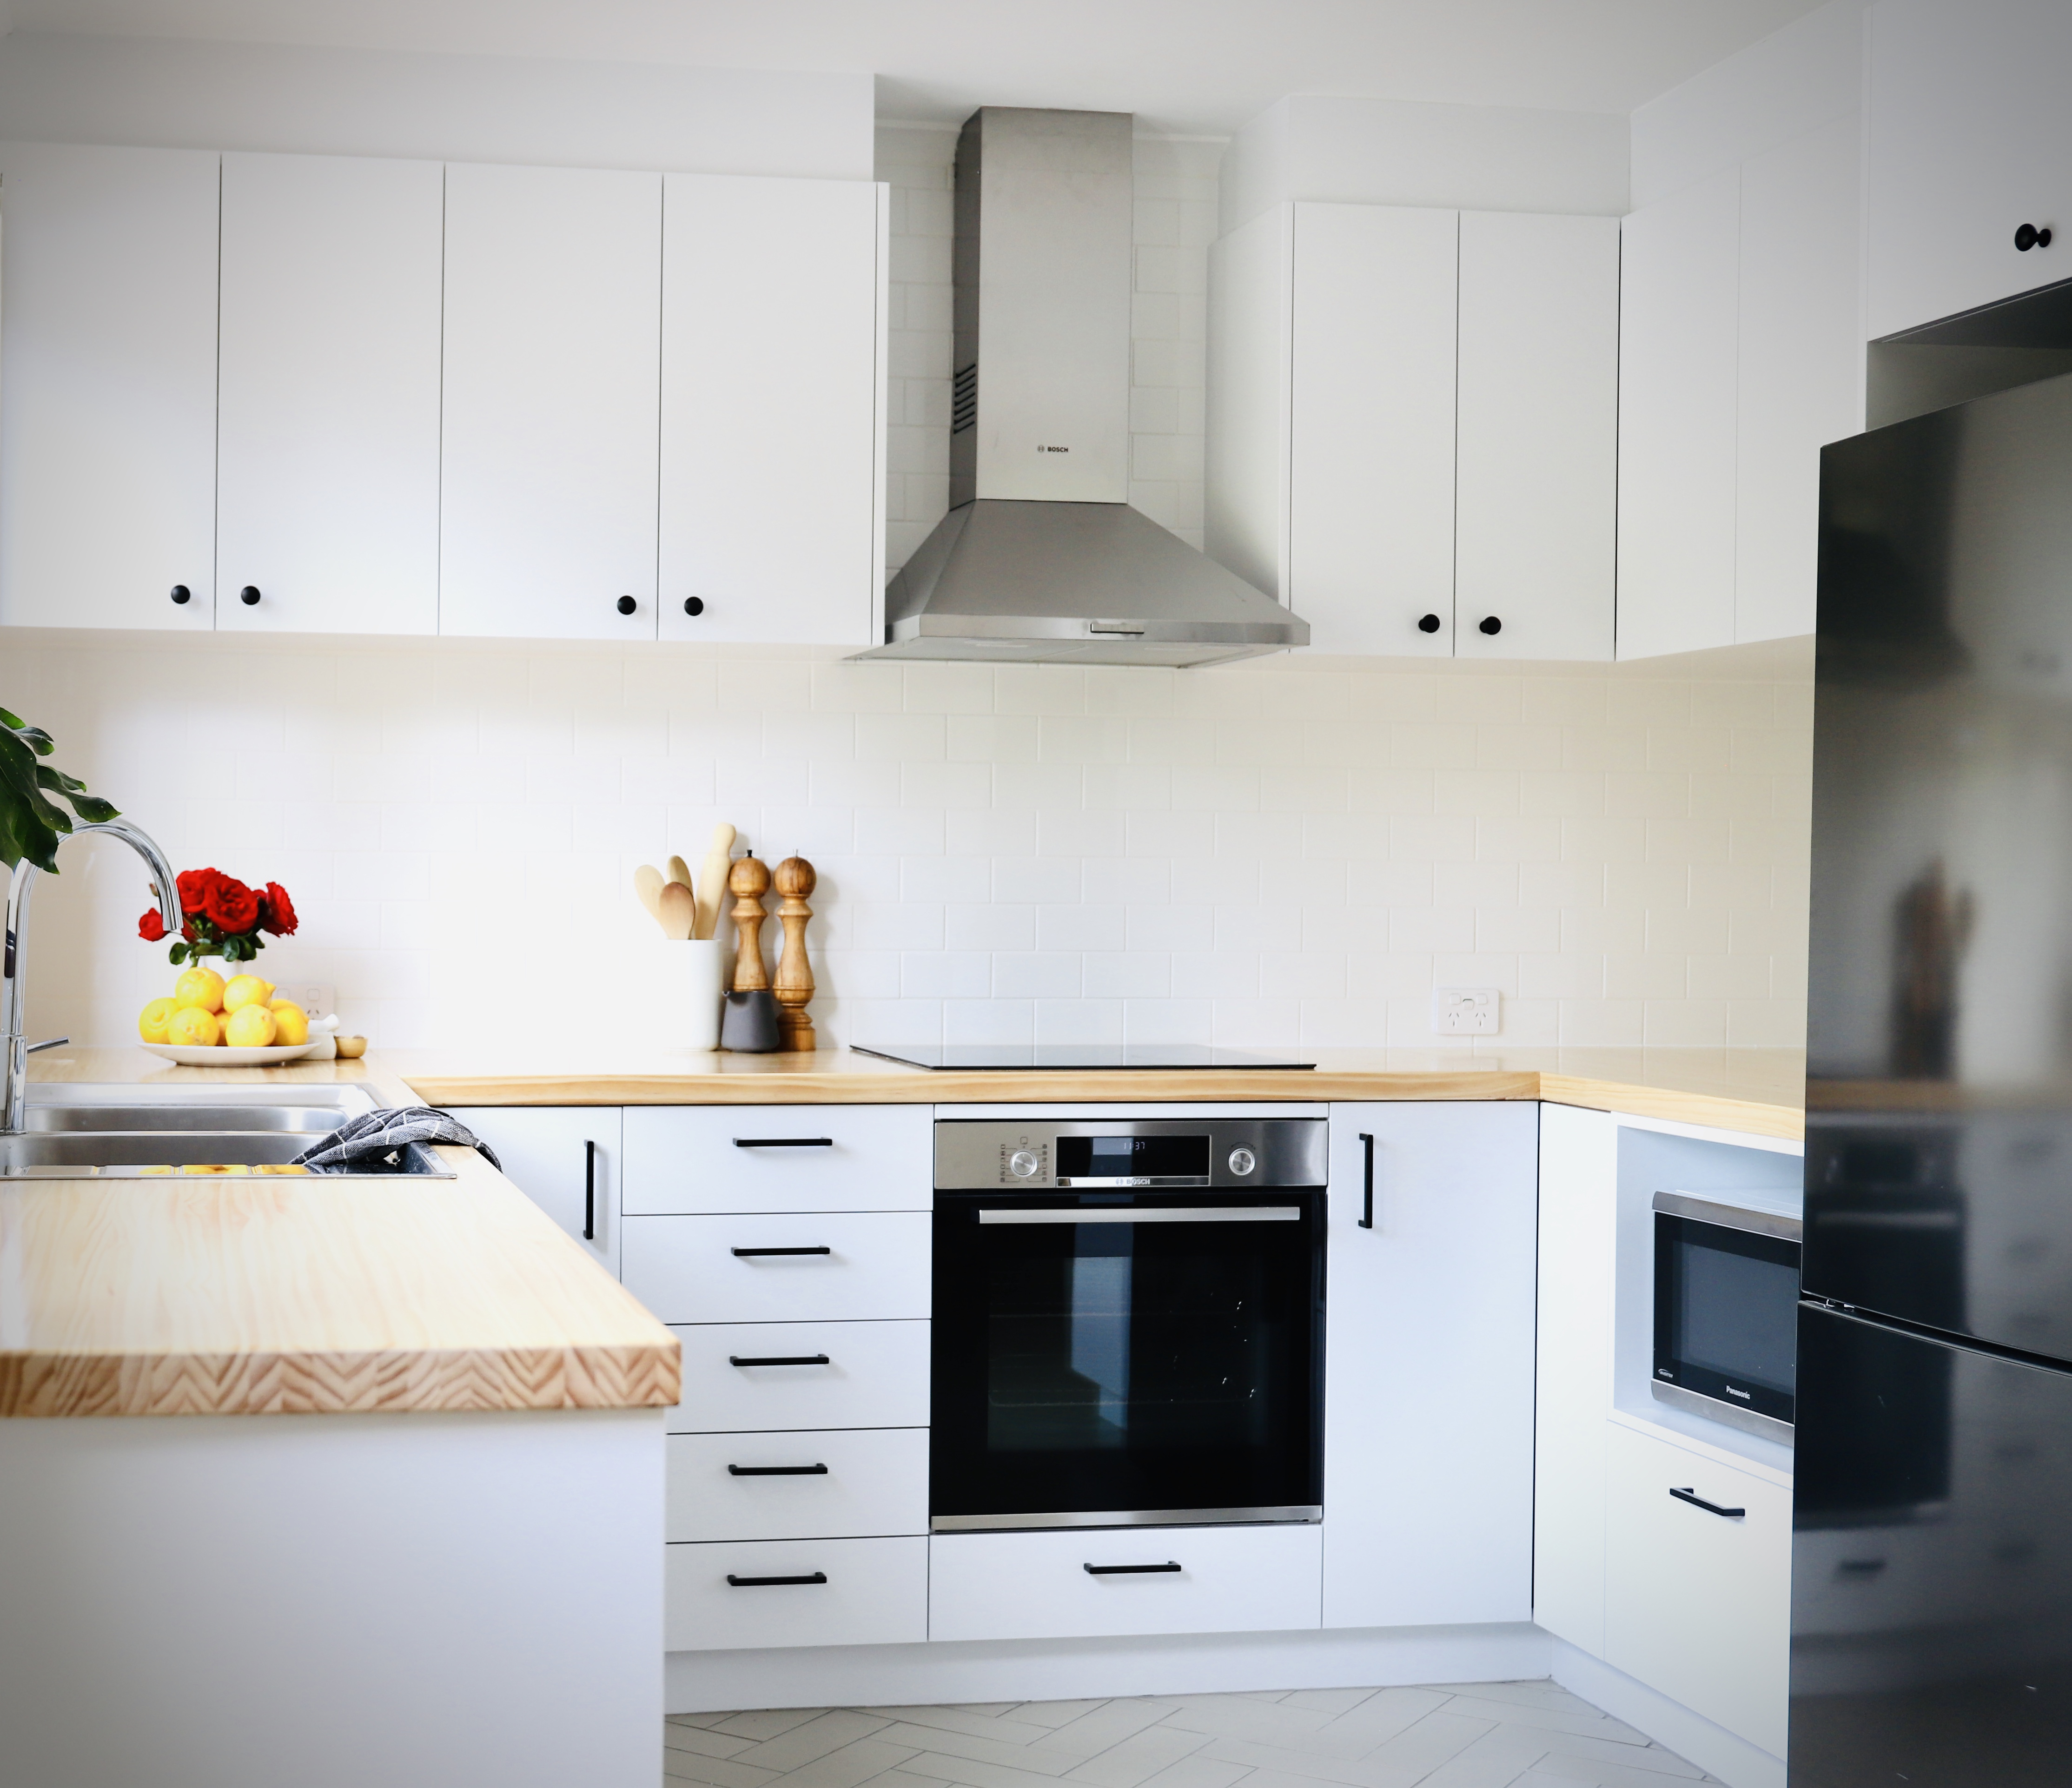 Modular kitchen with white cabinets, white shelves and wooden shade benchtops.